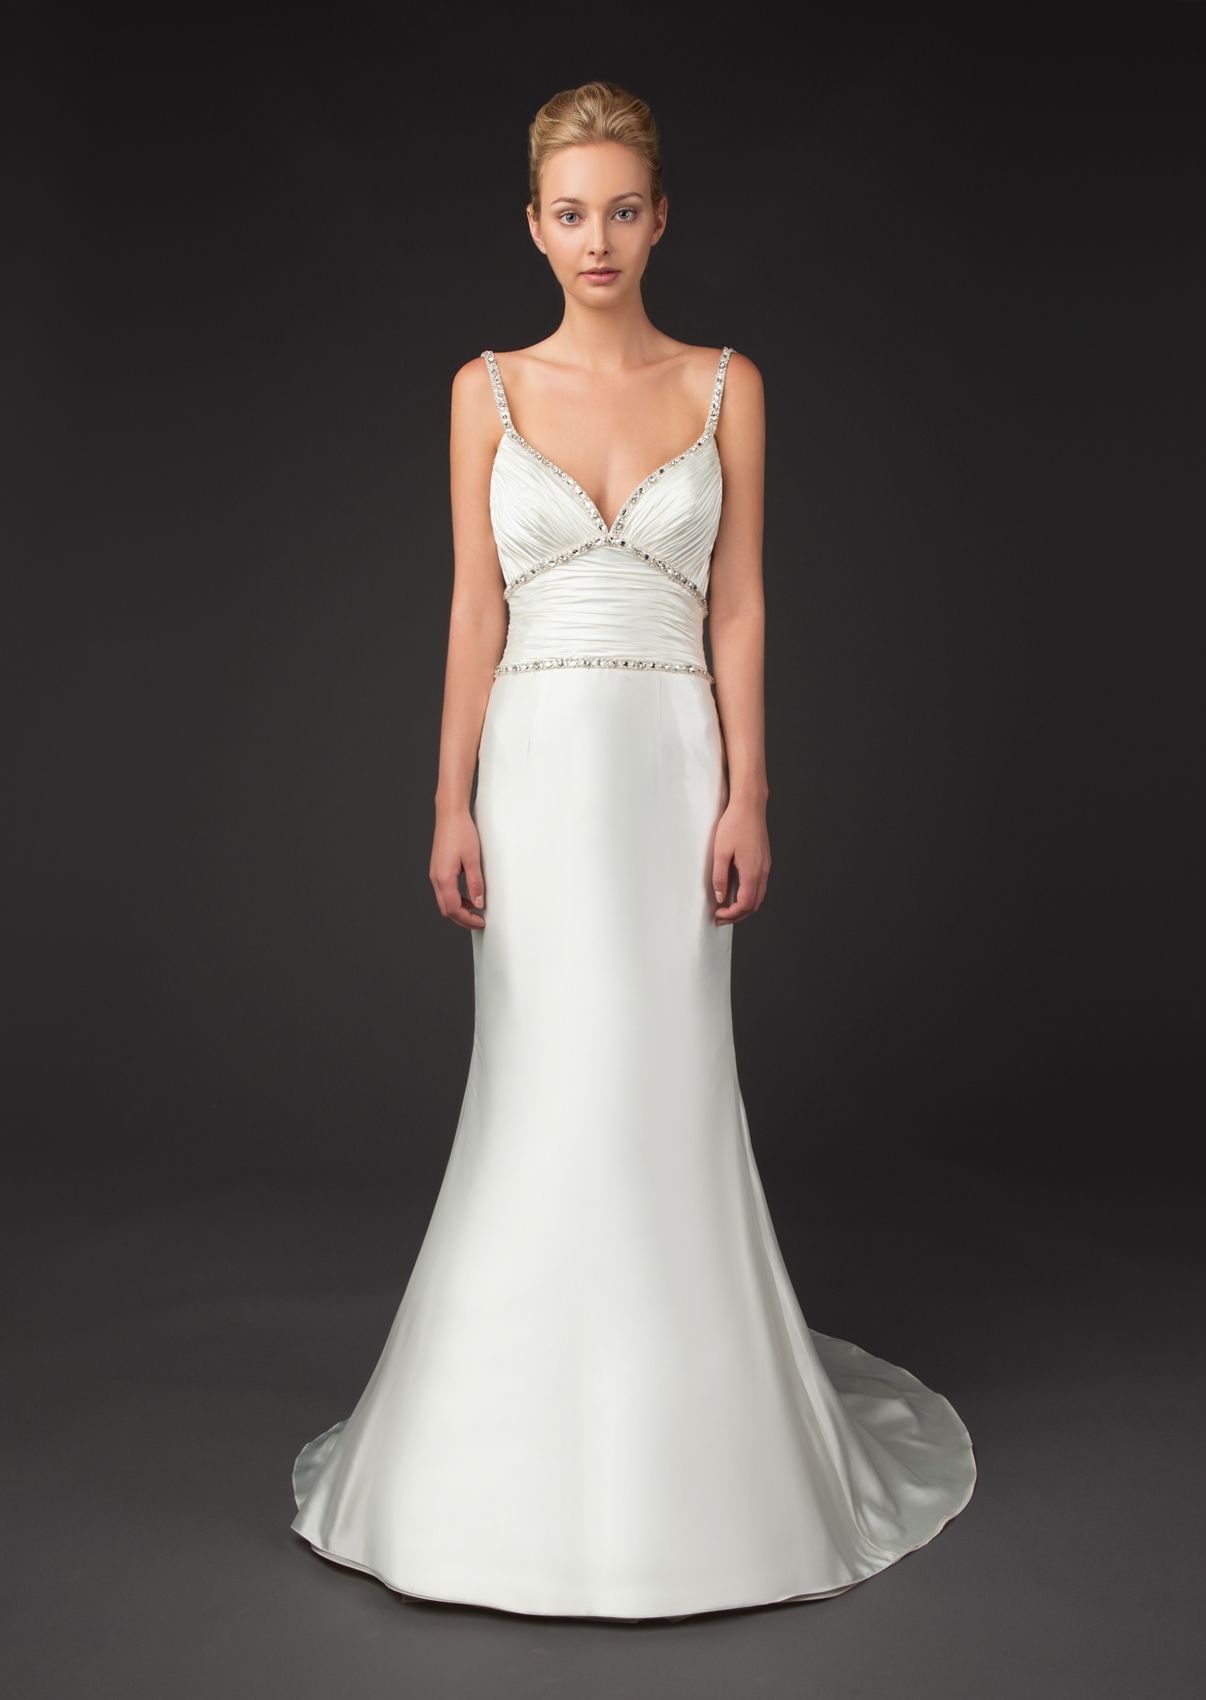 winnie-couture-wedding-dresses-fall-2014-diamond-label-collection-13-01202014